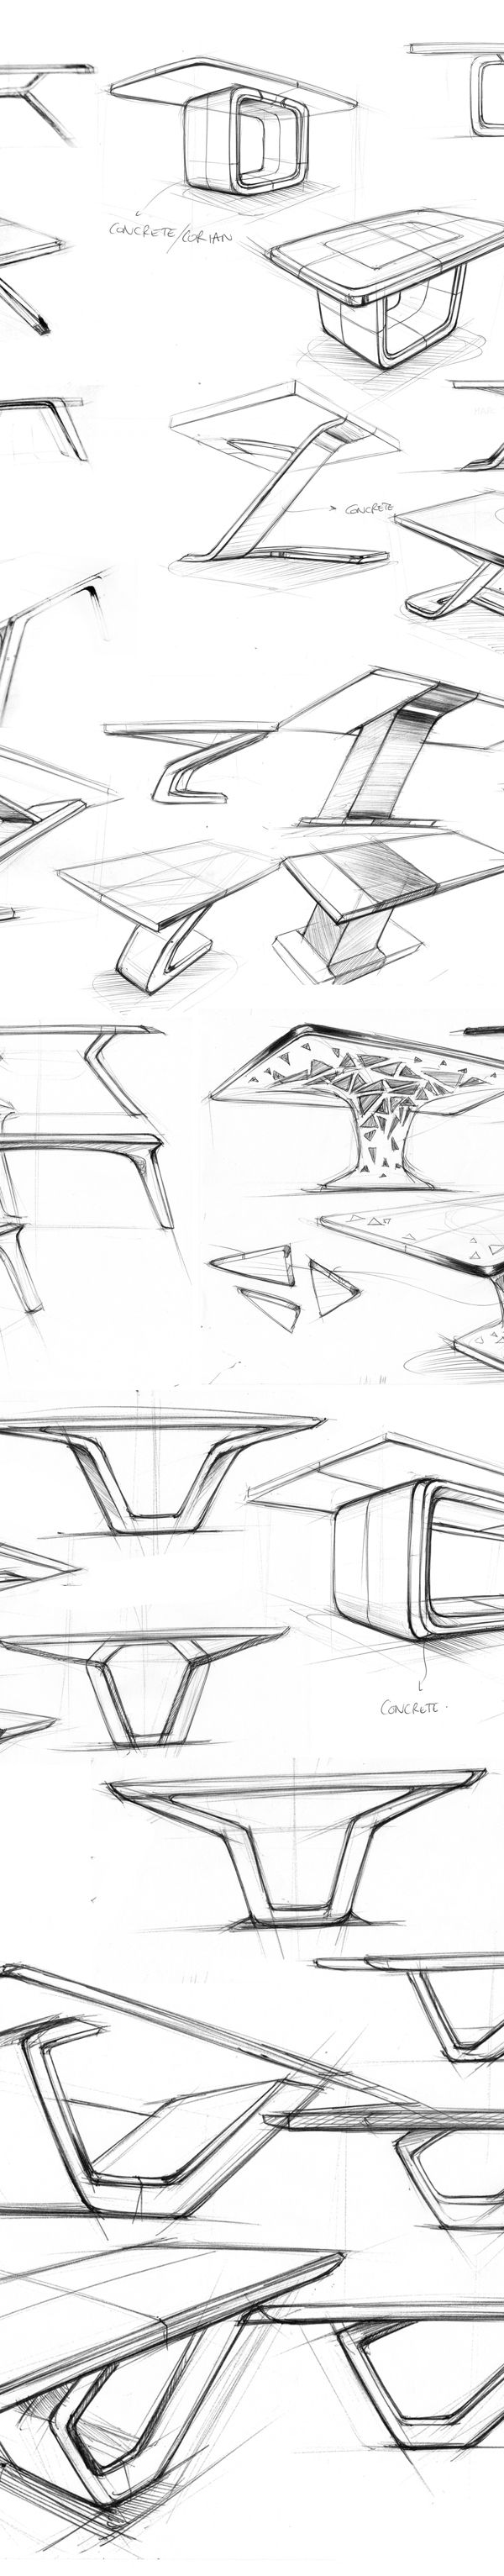 TABLE / POOL TABLE SKETCHES WIP   2014 On Behance